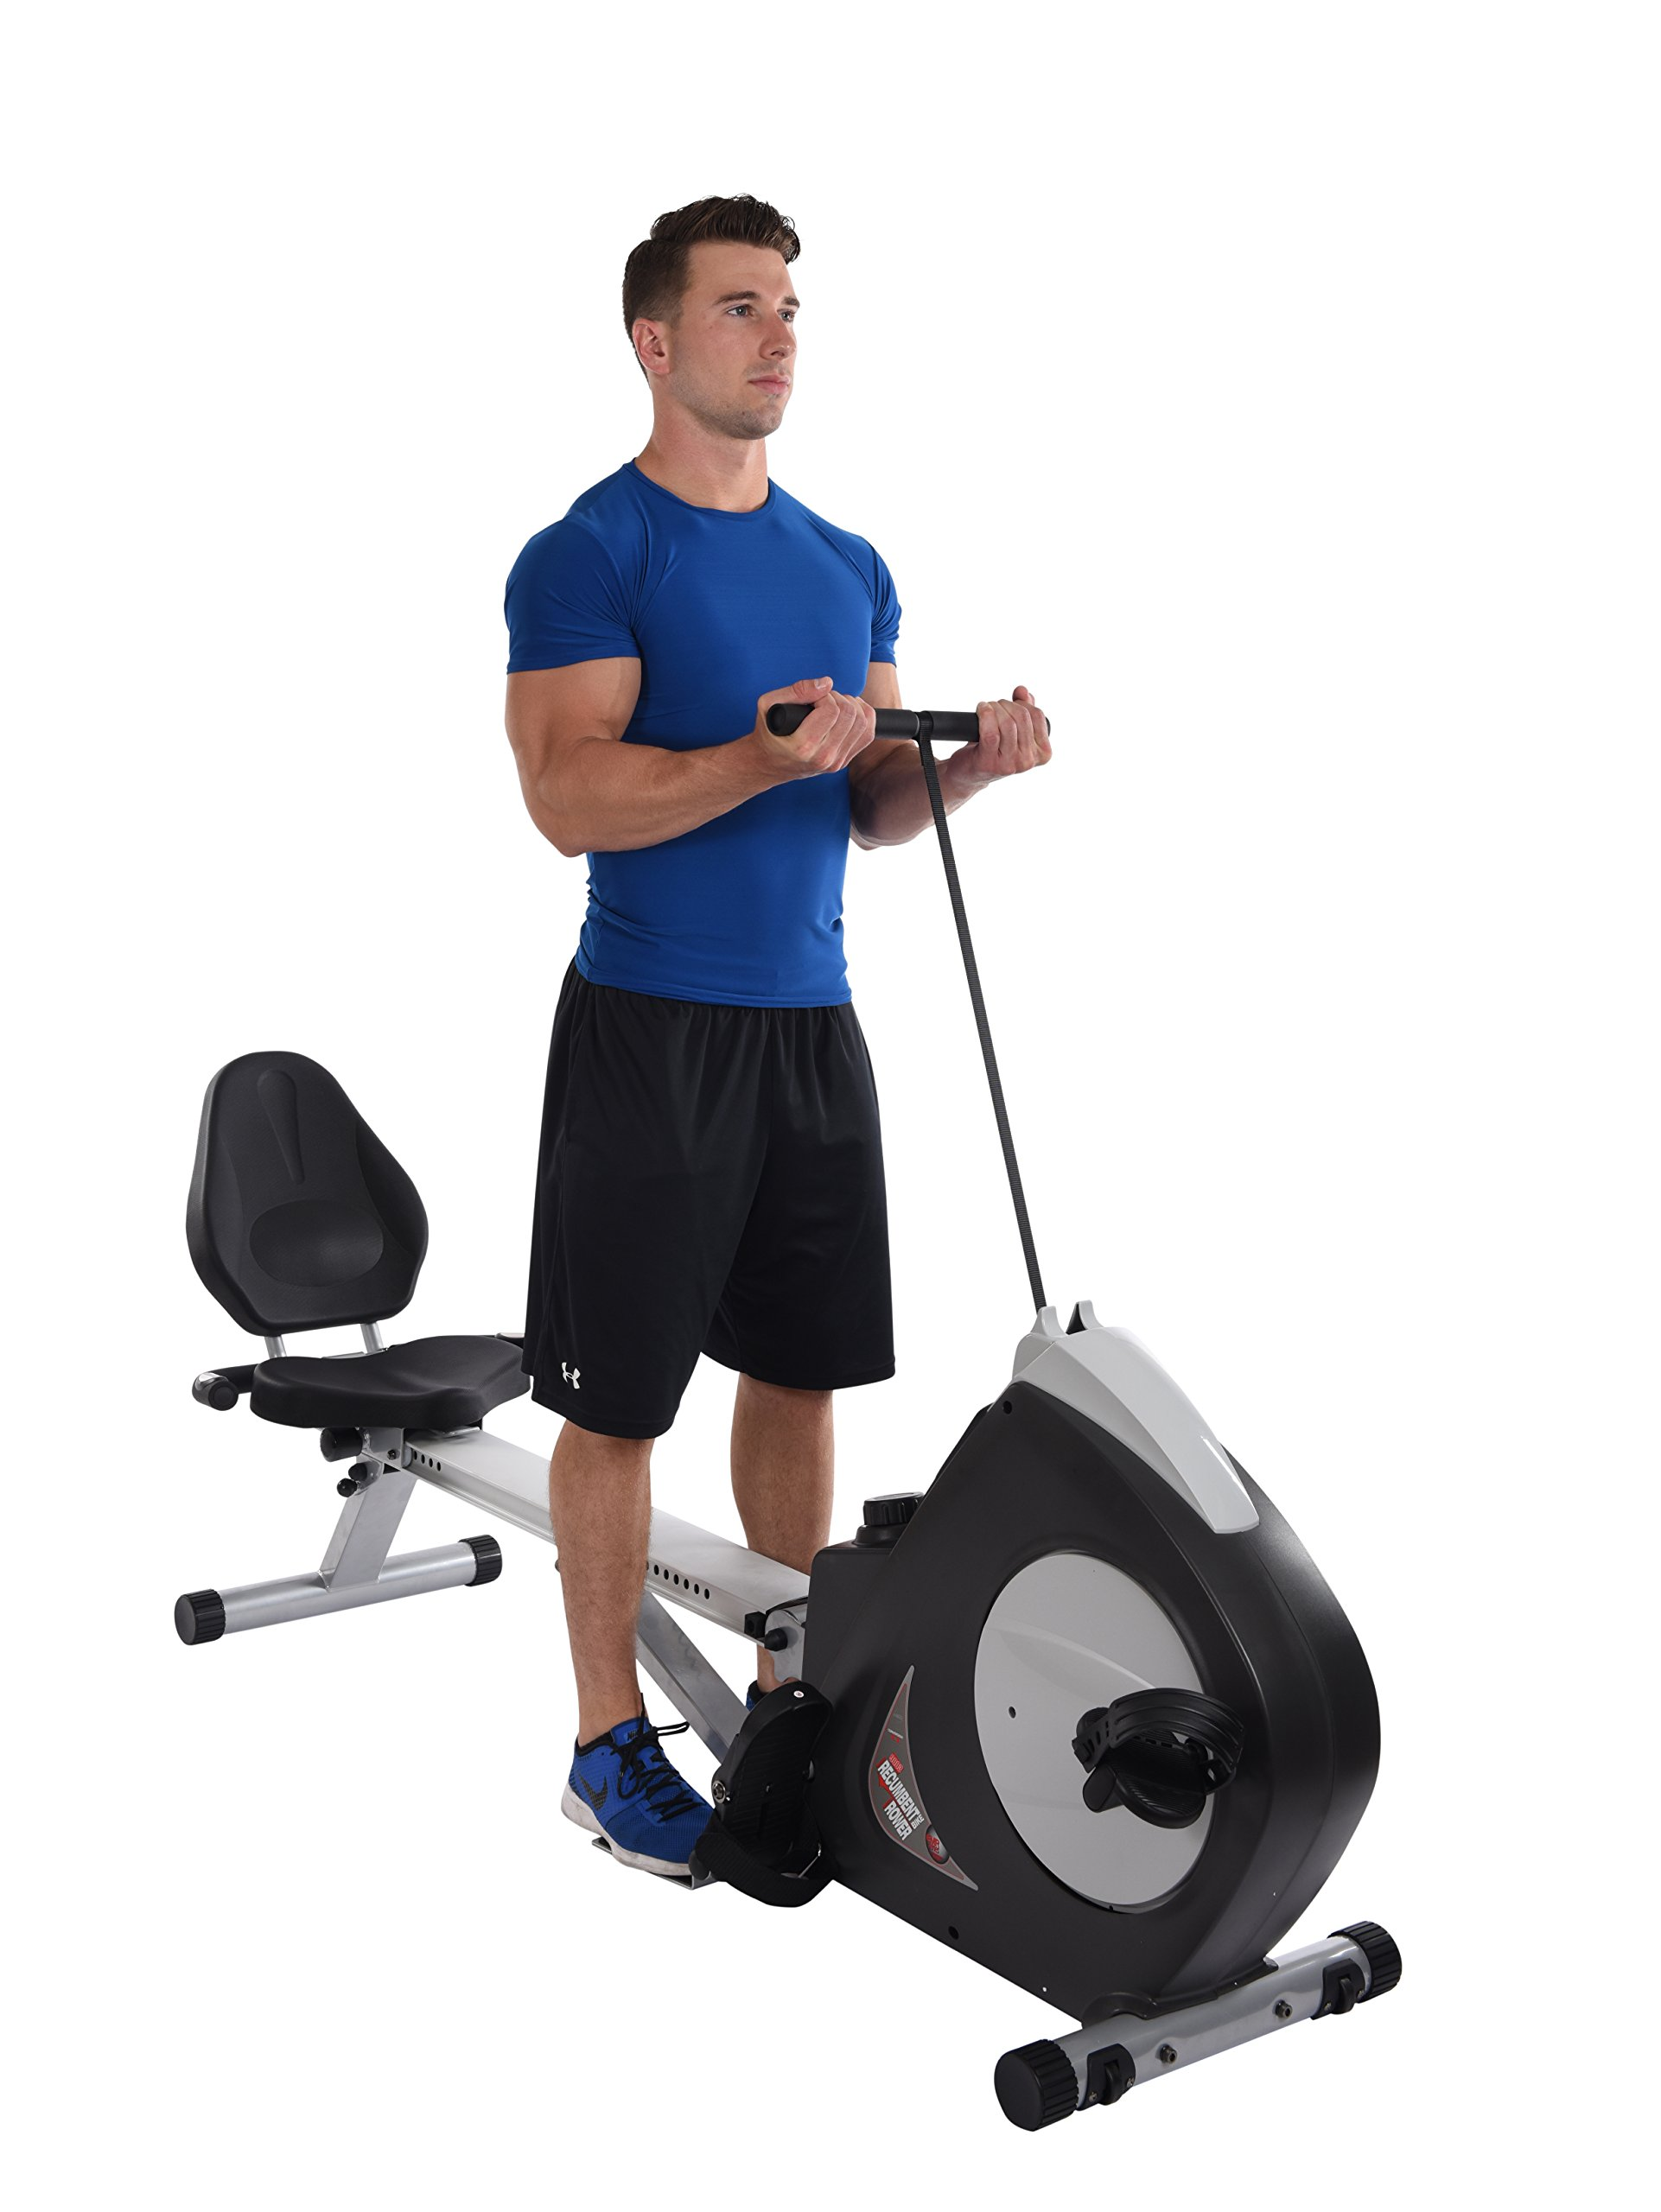 Stamina 15-9003 Deluxe Conversion II Recumbent / Rower by Stamina (Image #5)